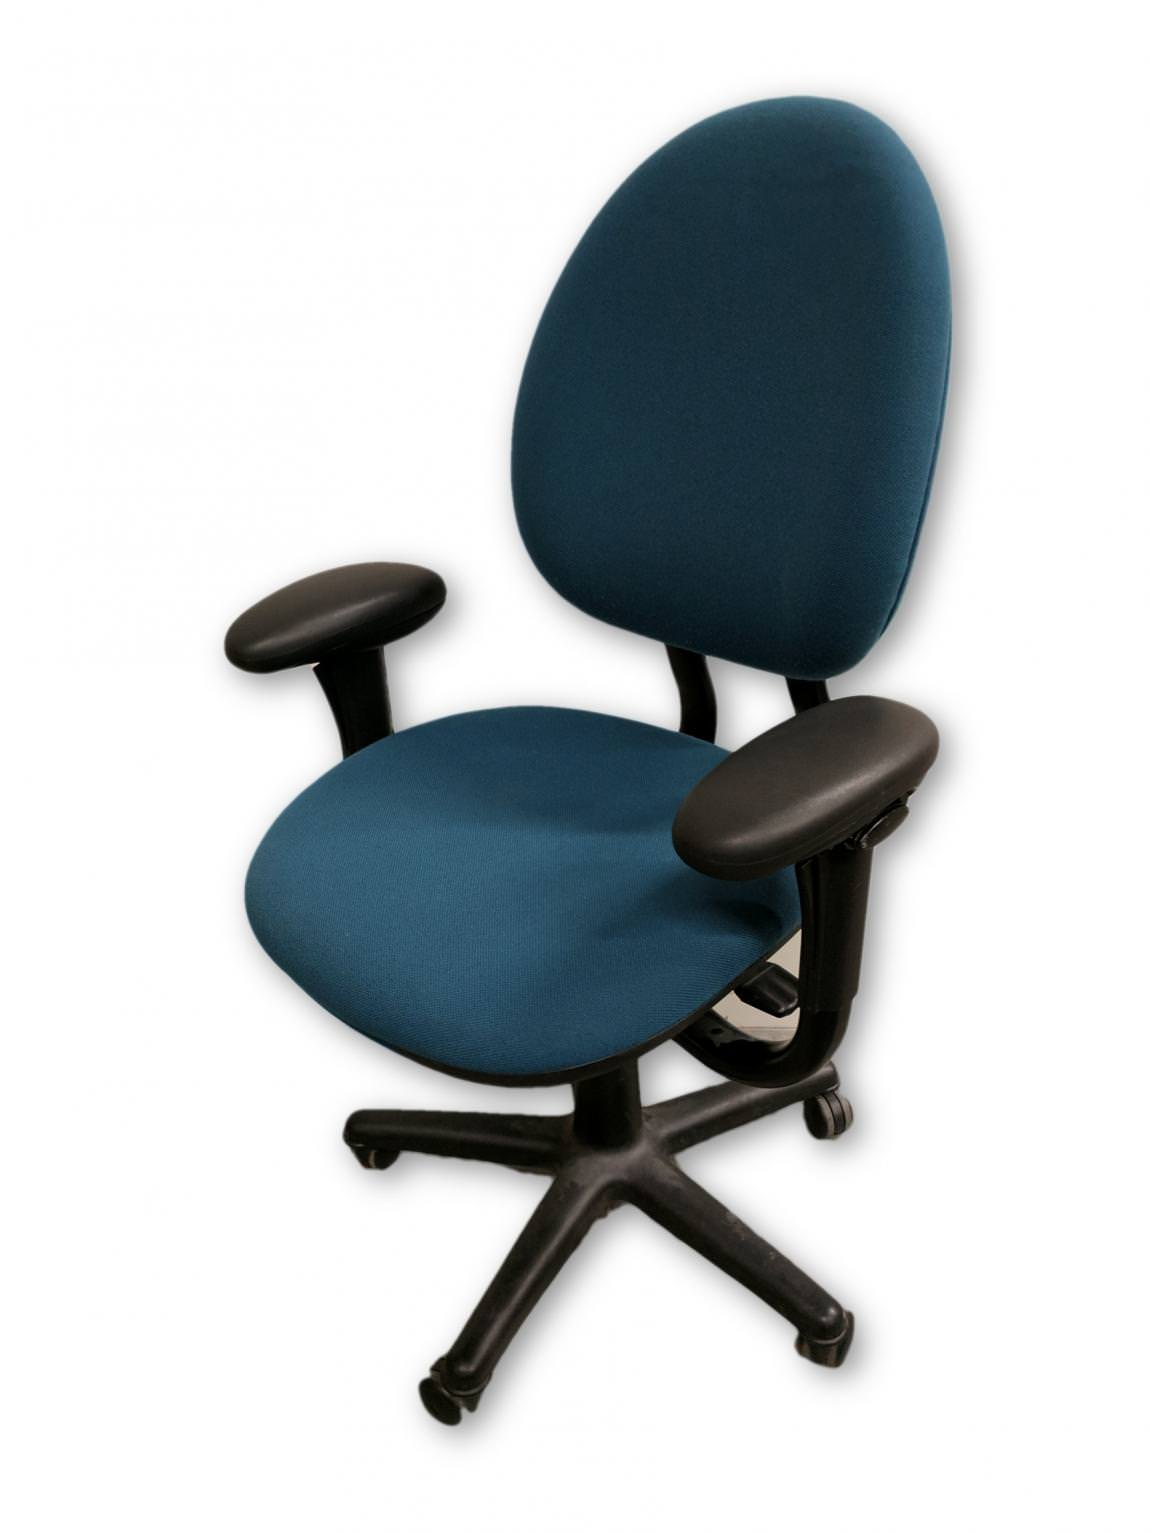 Steelcase Criterion Chair Images Of Teal Steelcase Criterion Rolling Office Chairs